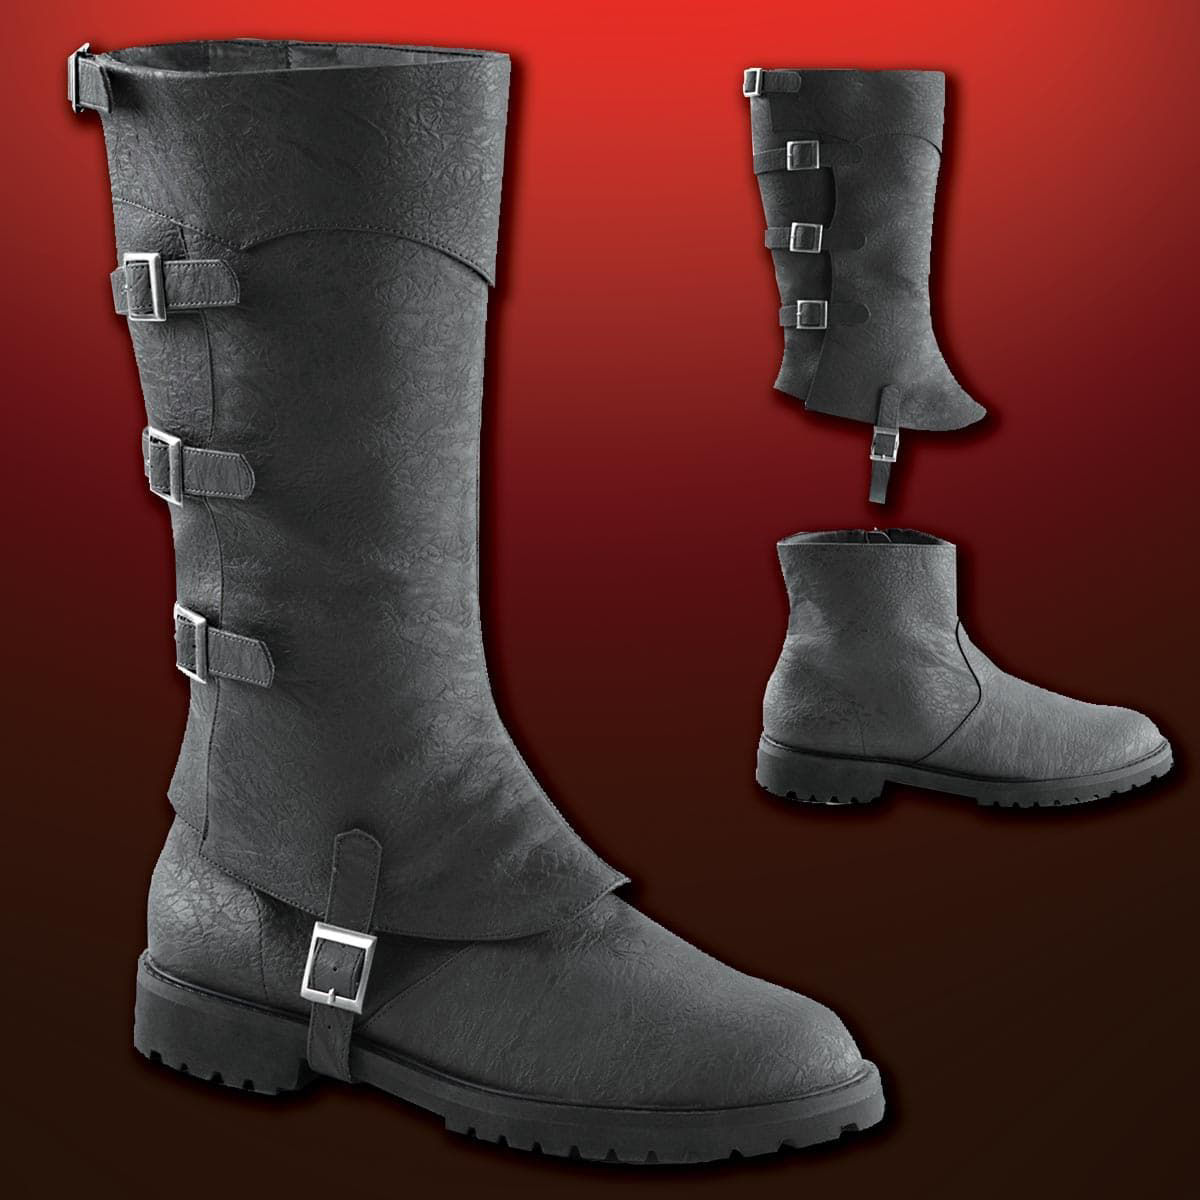 Black two-part faux leather boots have a short, slip-on ankle boot and faux leather upper gaiter with buckles